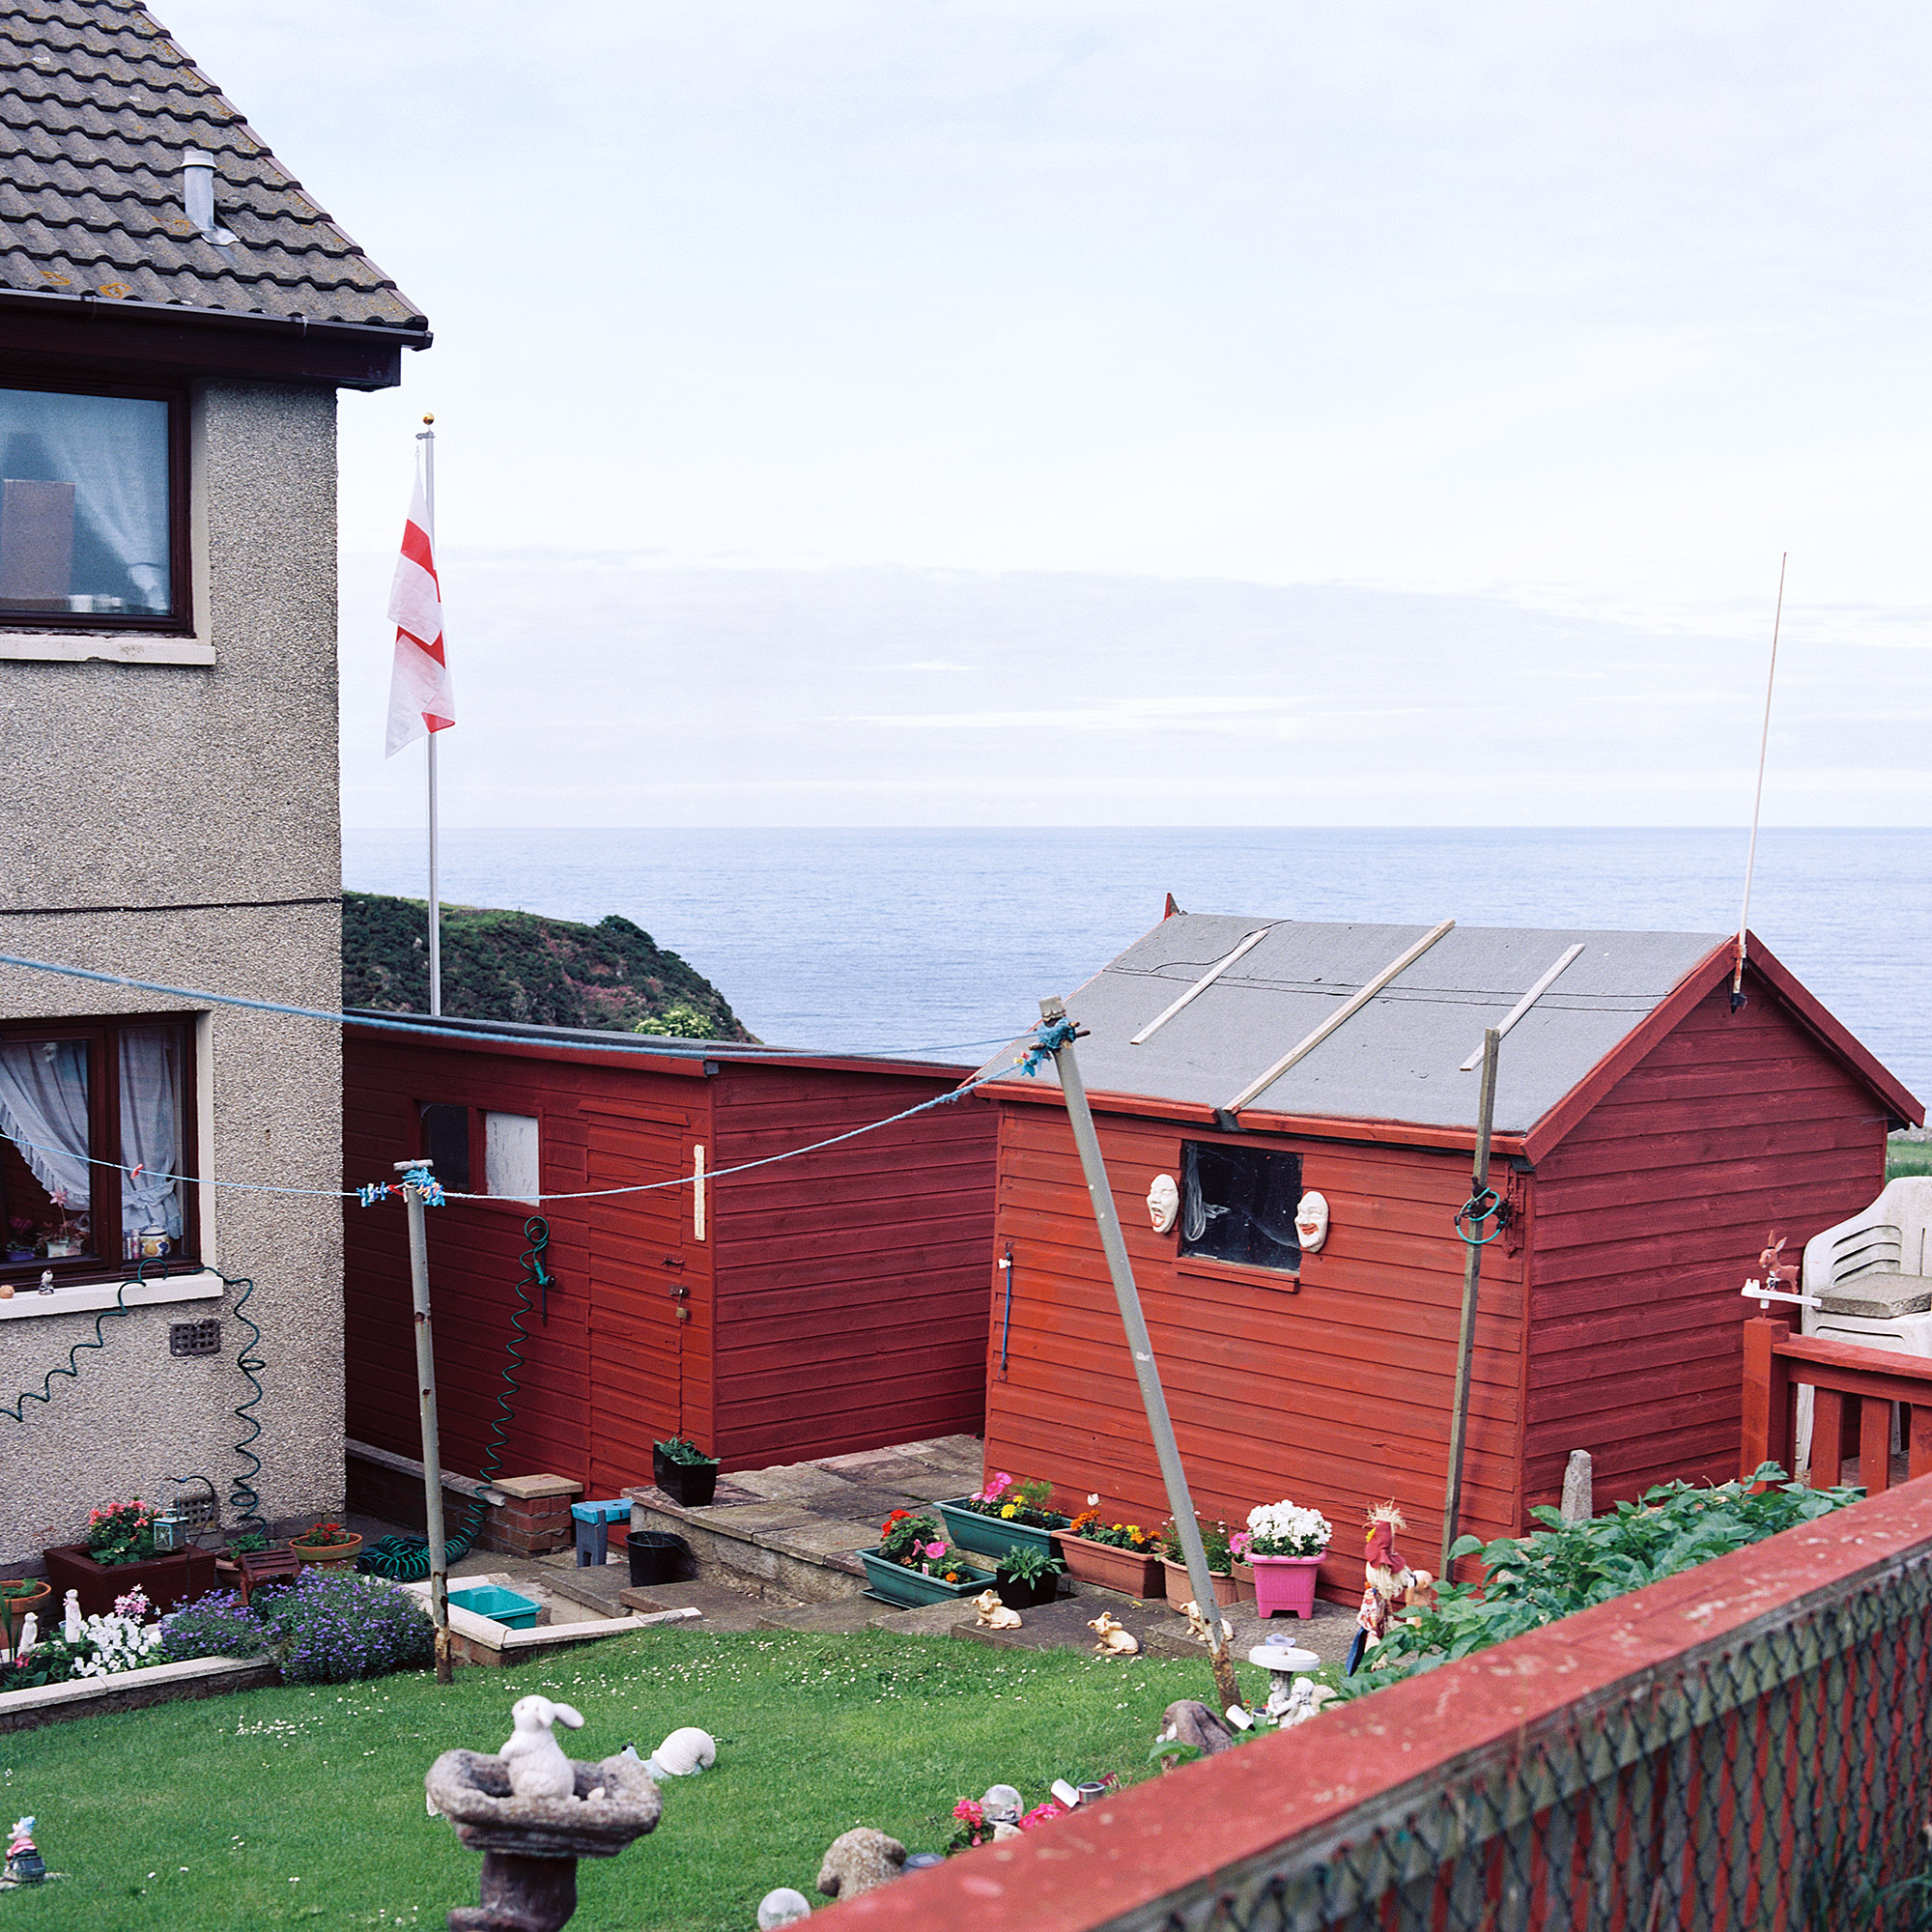 A St. George's cross is raised above a garden close to the north sea coast in Burnmouth, Scotland